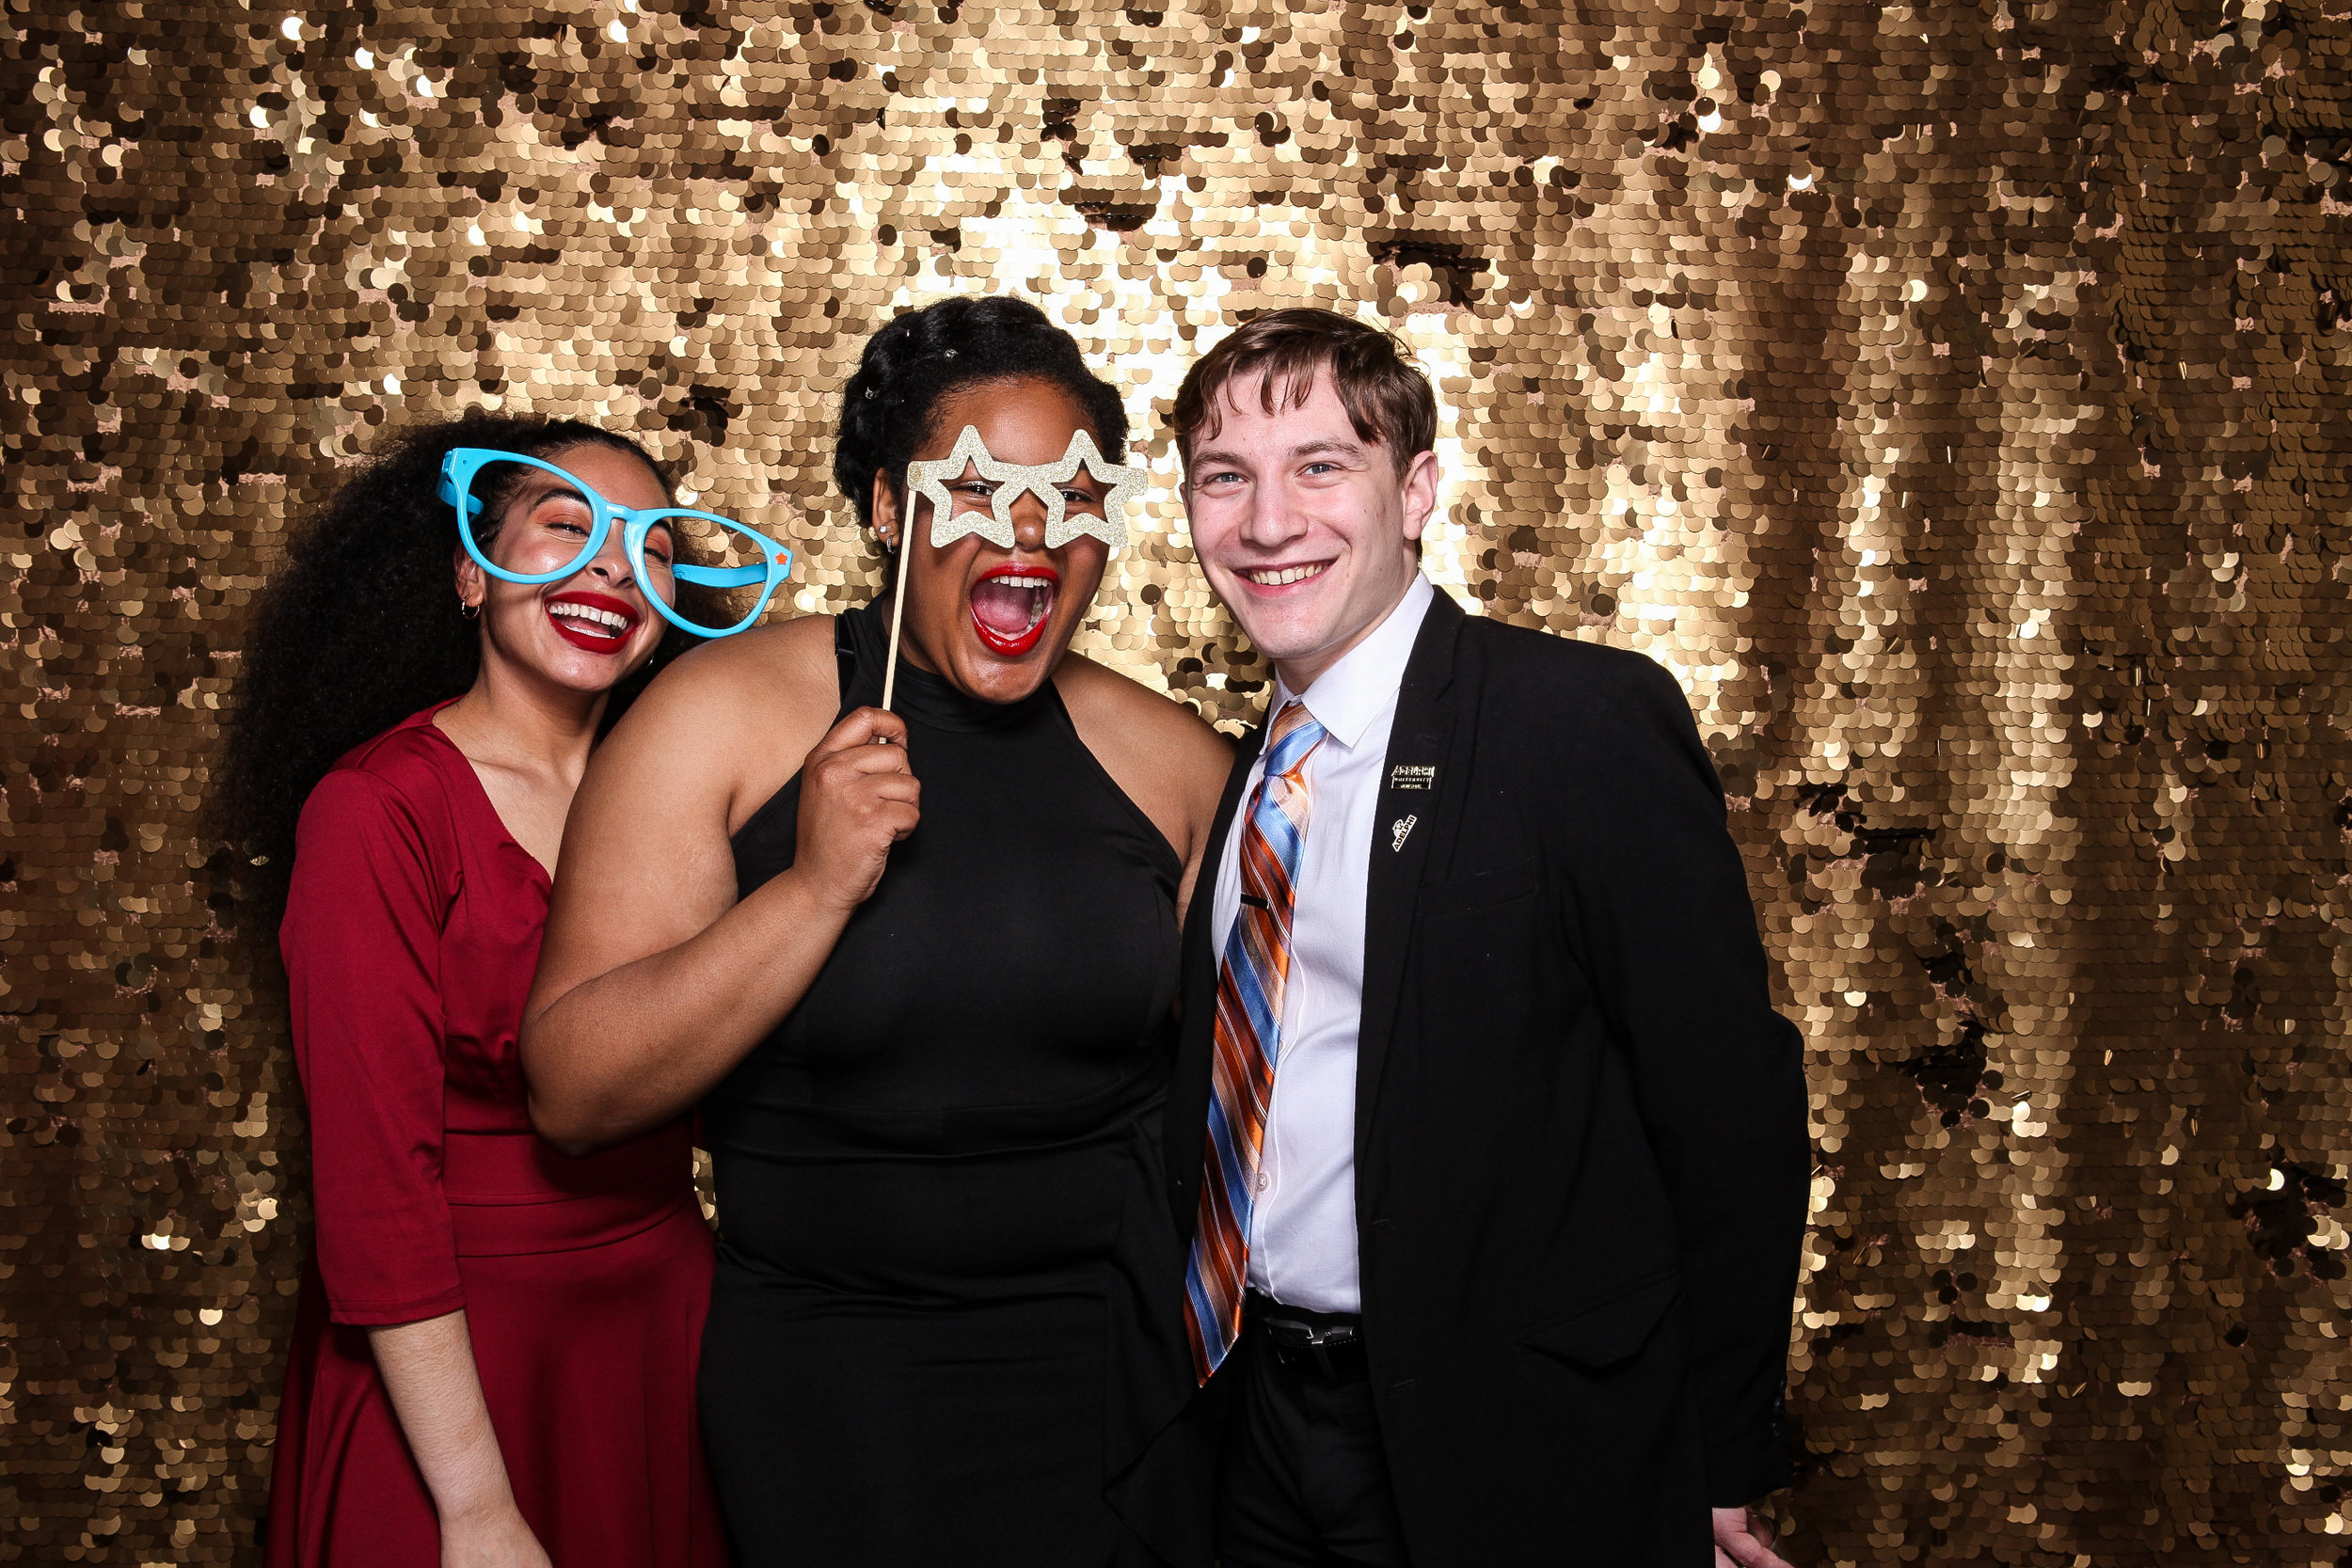 20190503_Adelphi_Senior_Formal-395.jpg